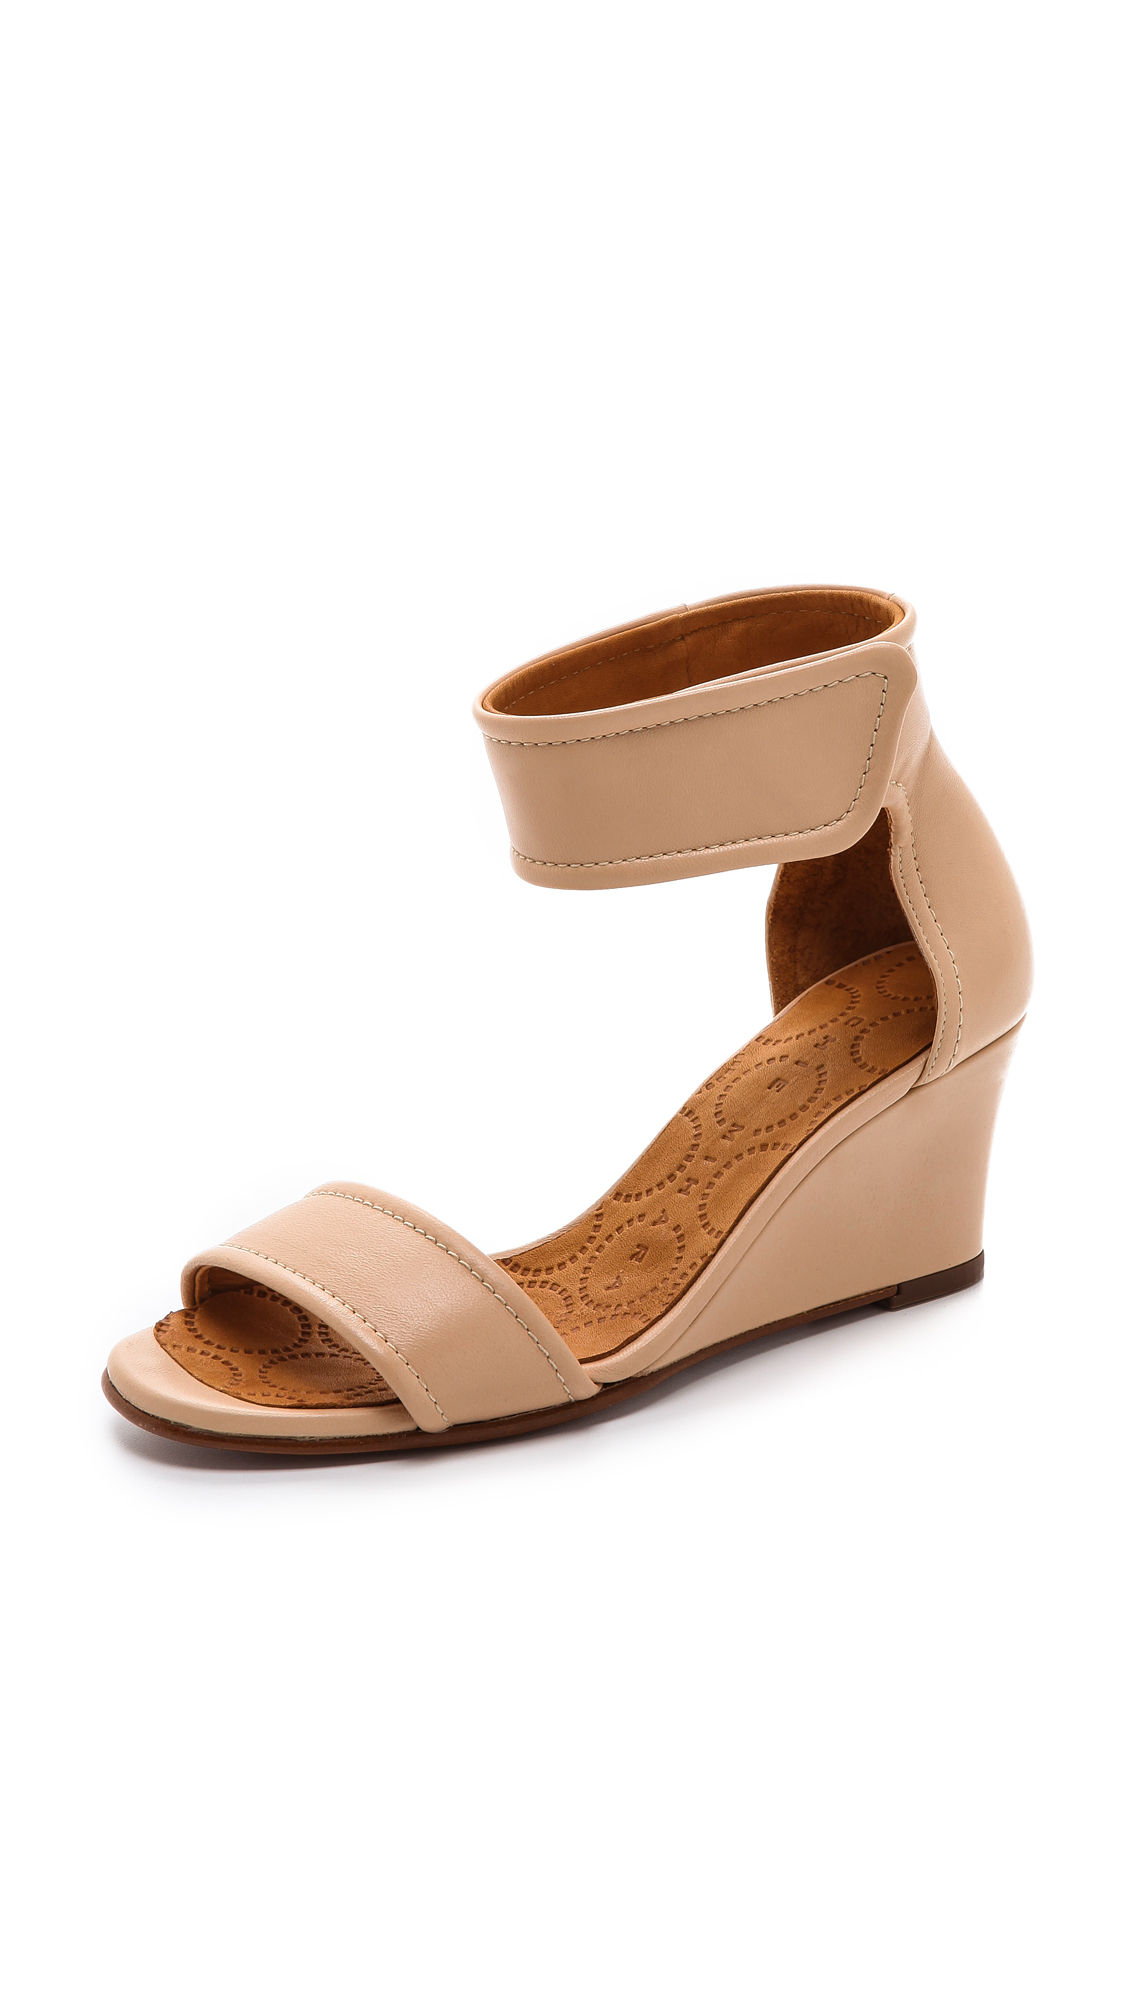 Lyst Chie Mihara Suspiro Wedge Sandals In Natural